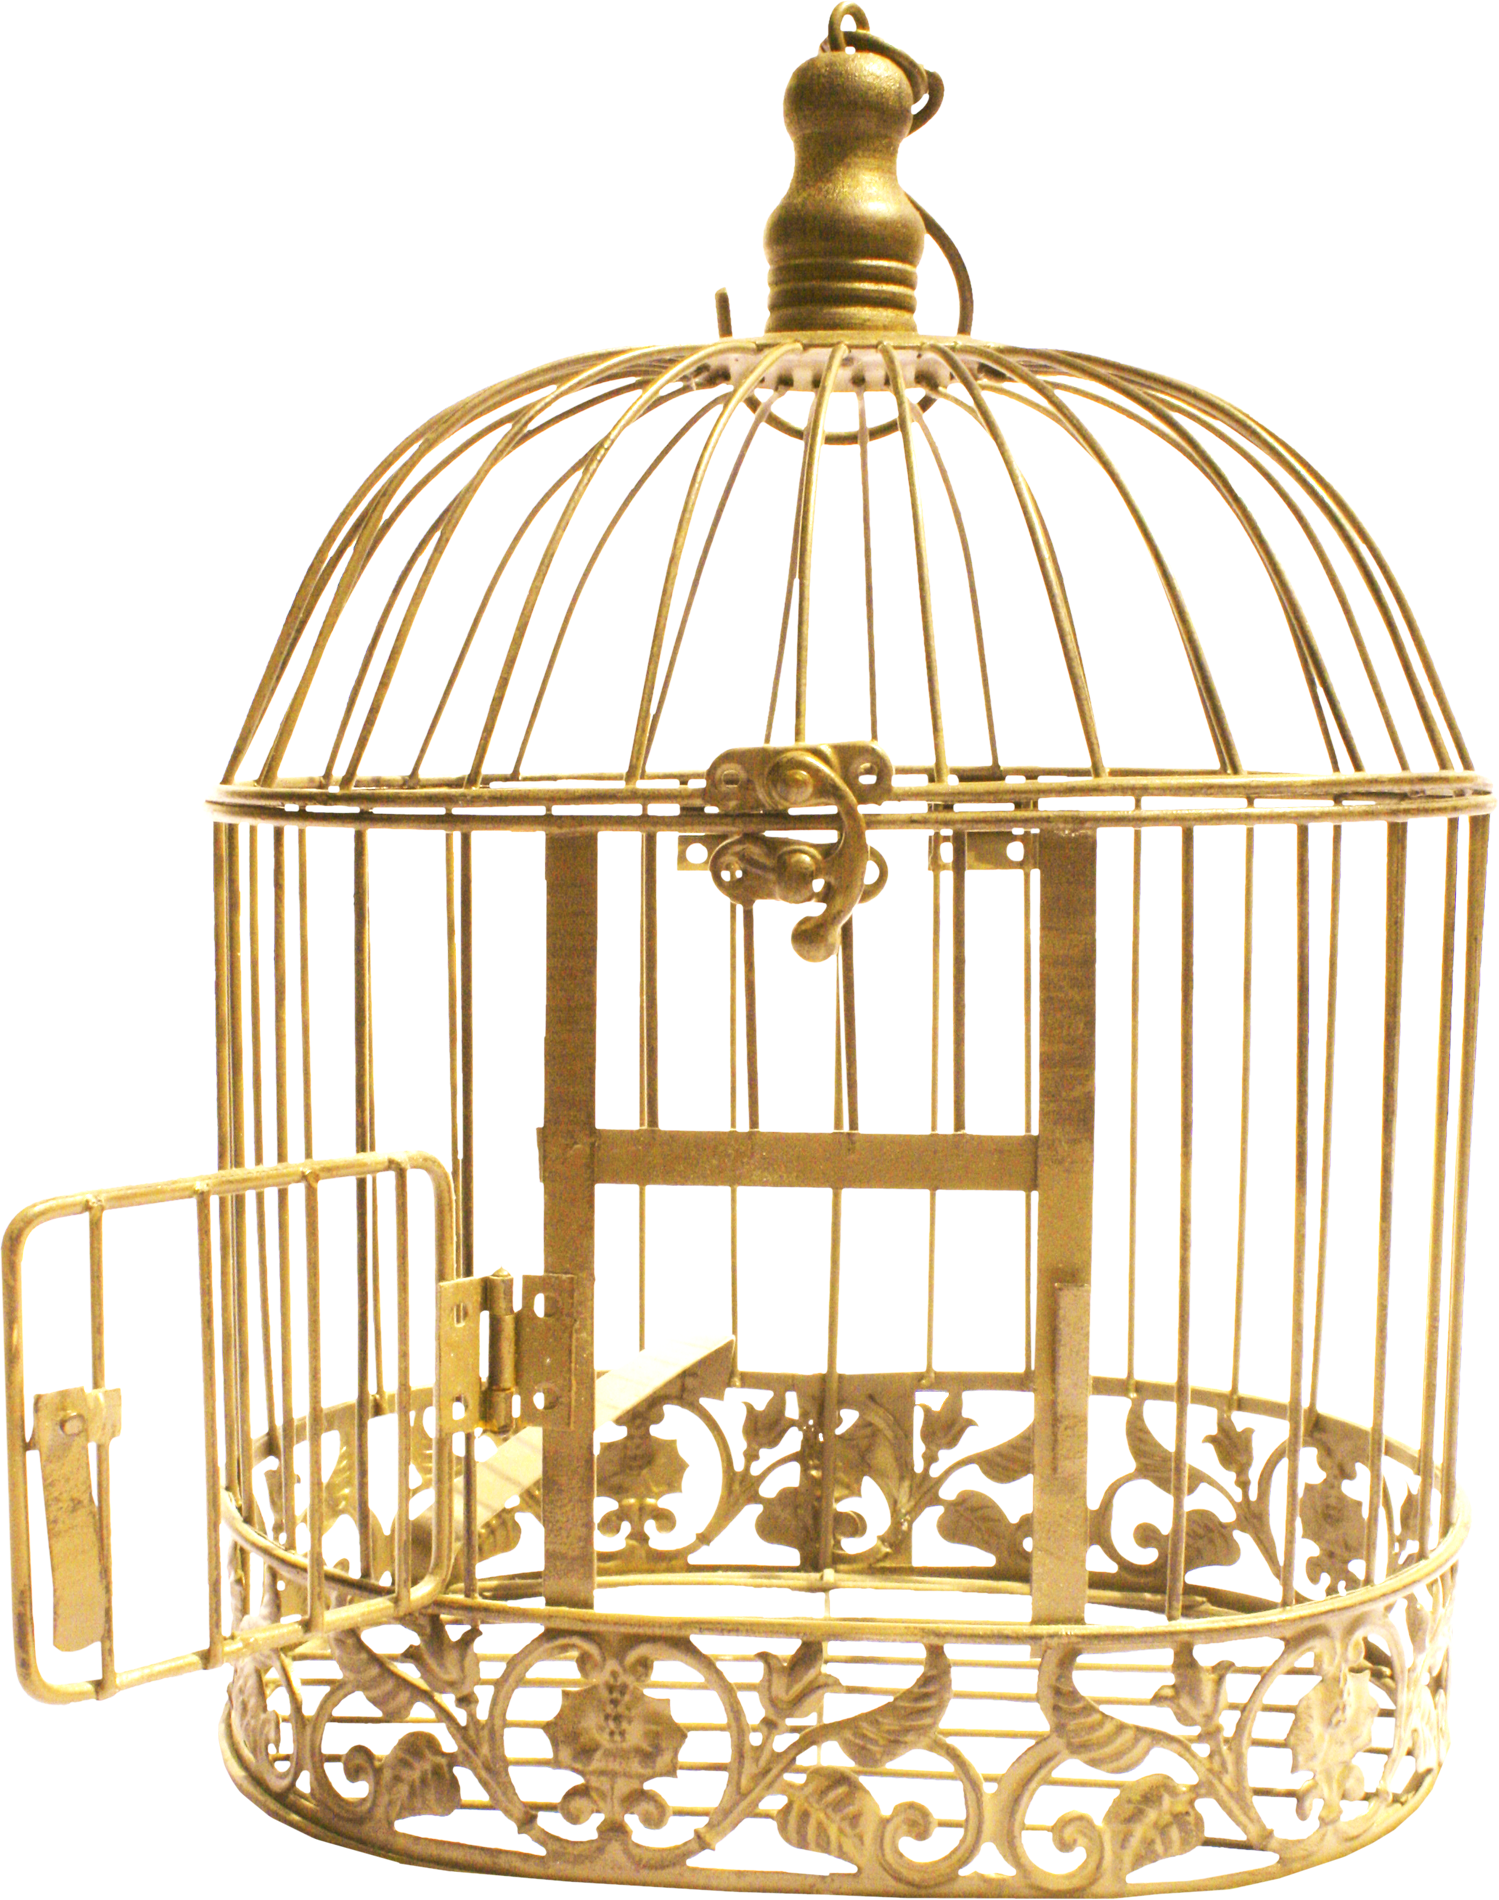 Cage PNG images Download